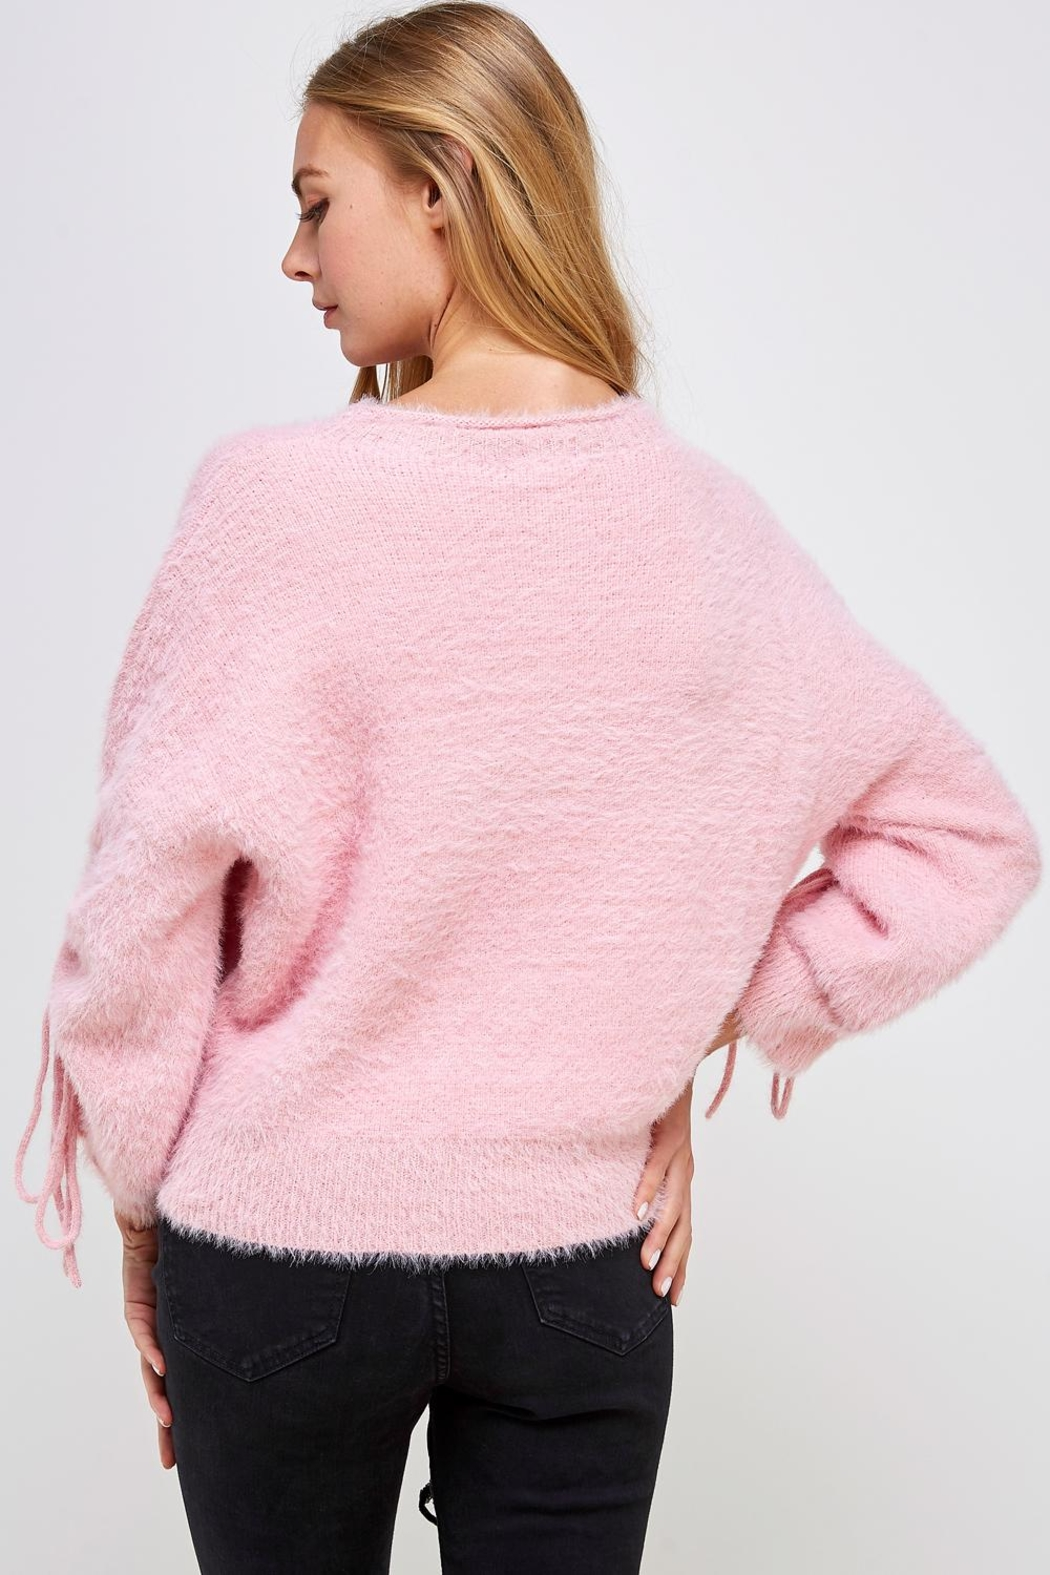 Cotton Candy LA Fuzzy Tie Sweater - Back Cropped Image